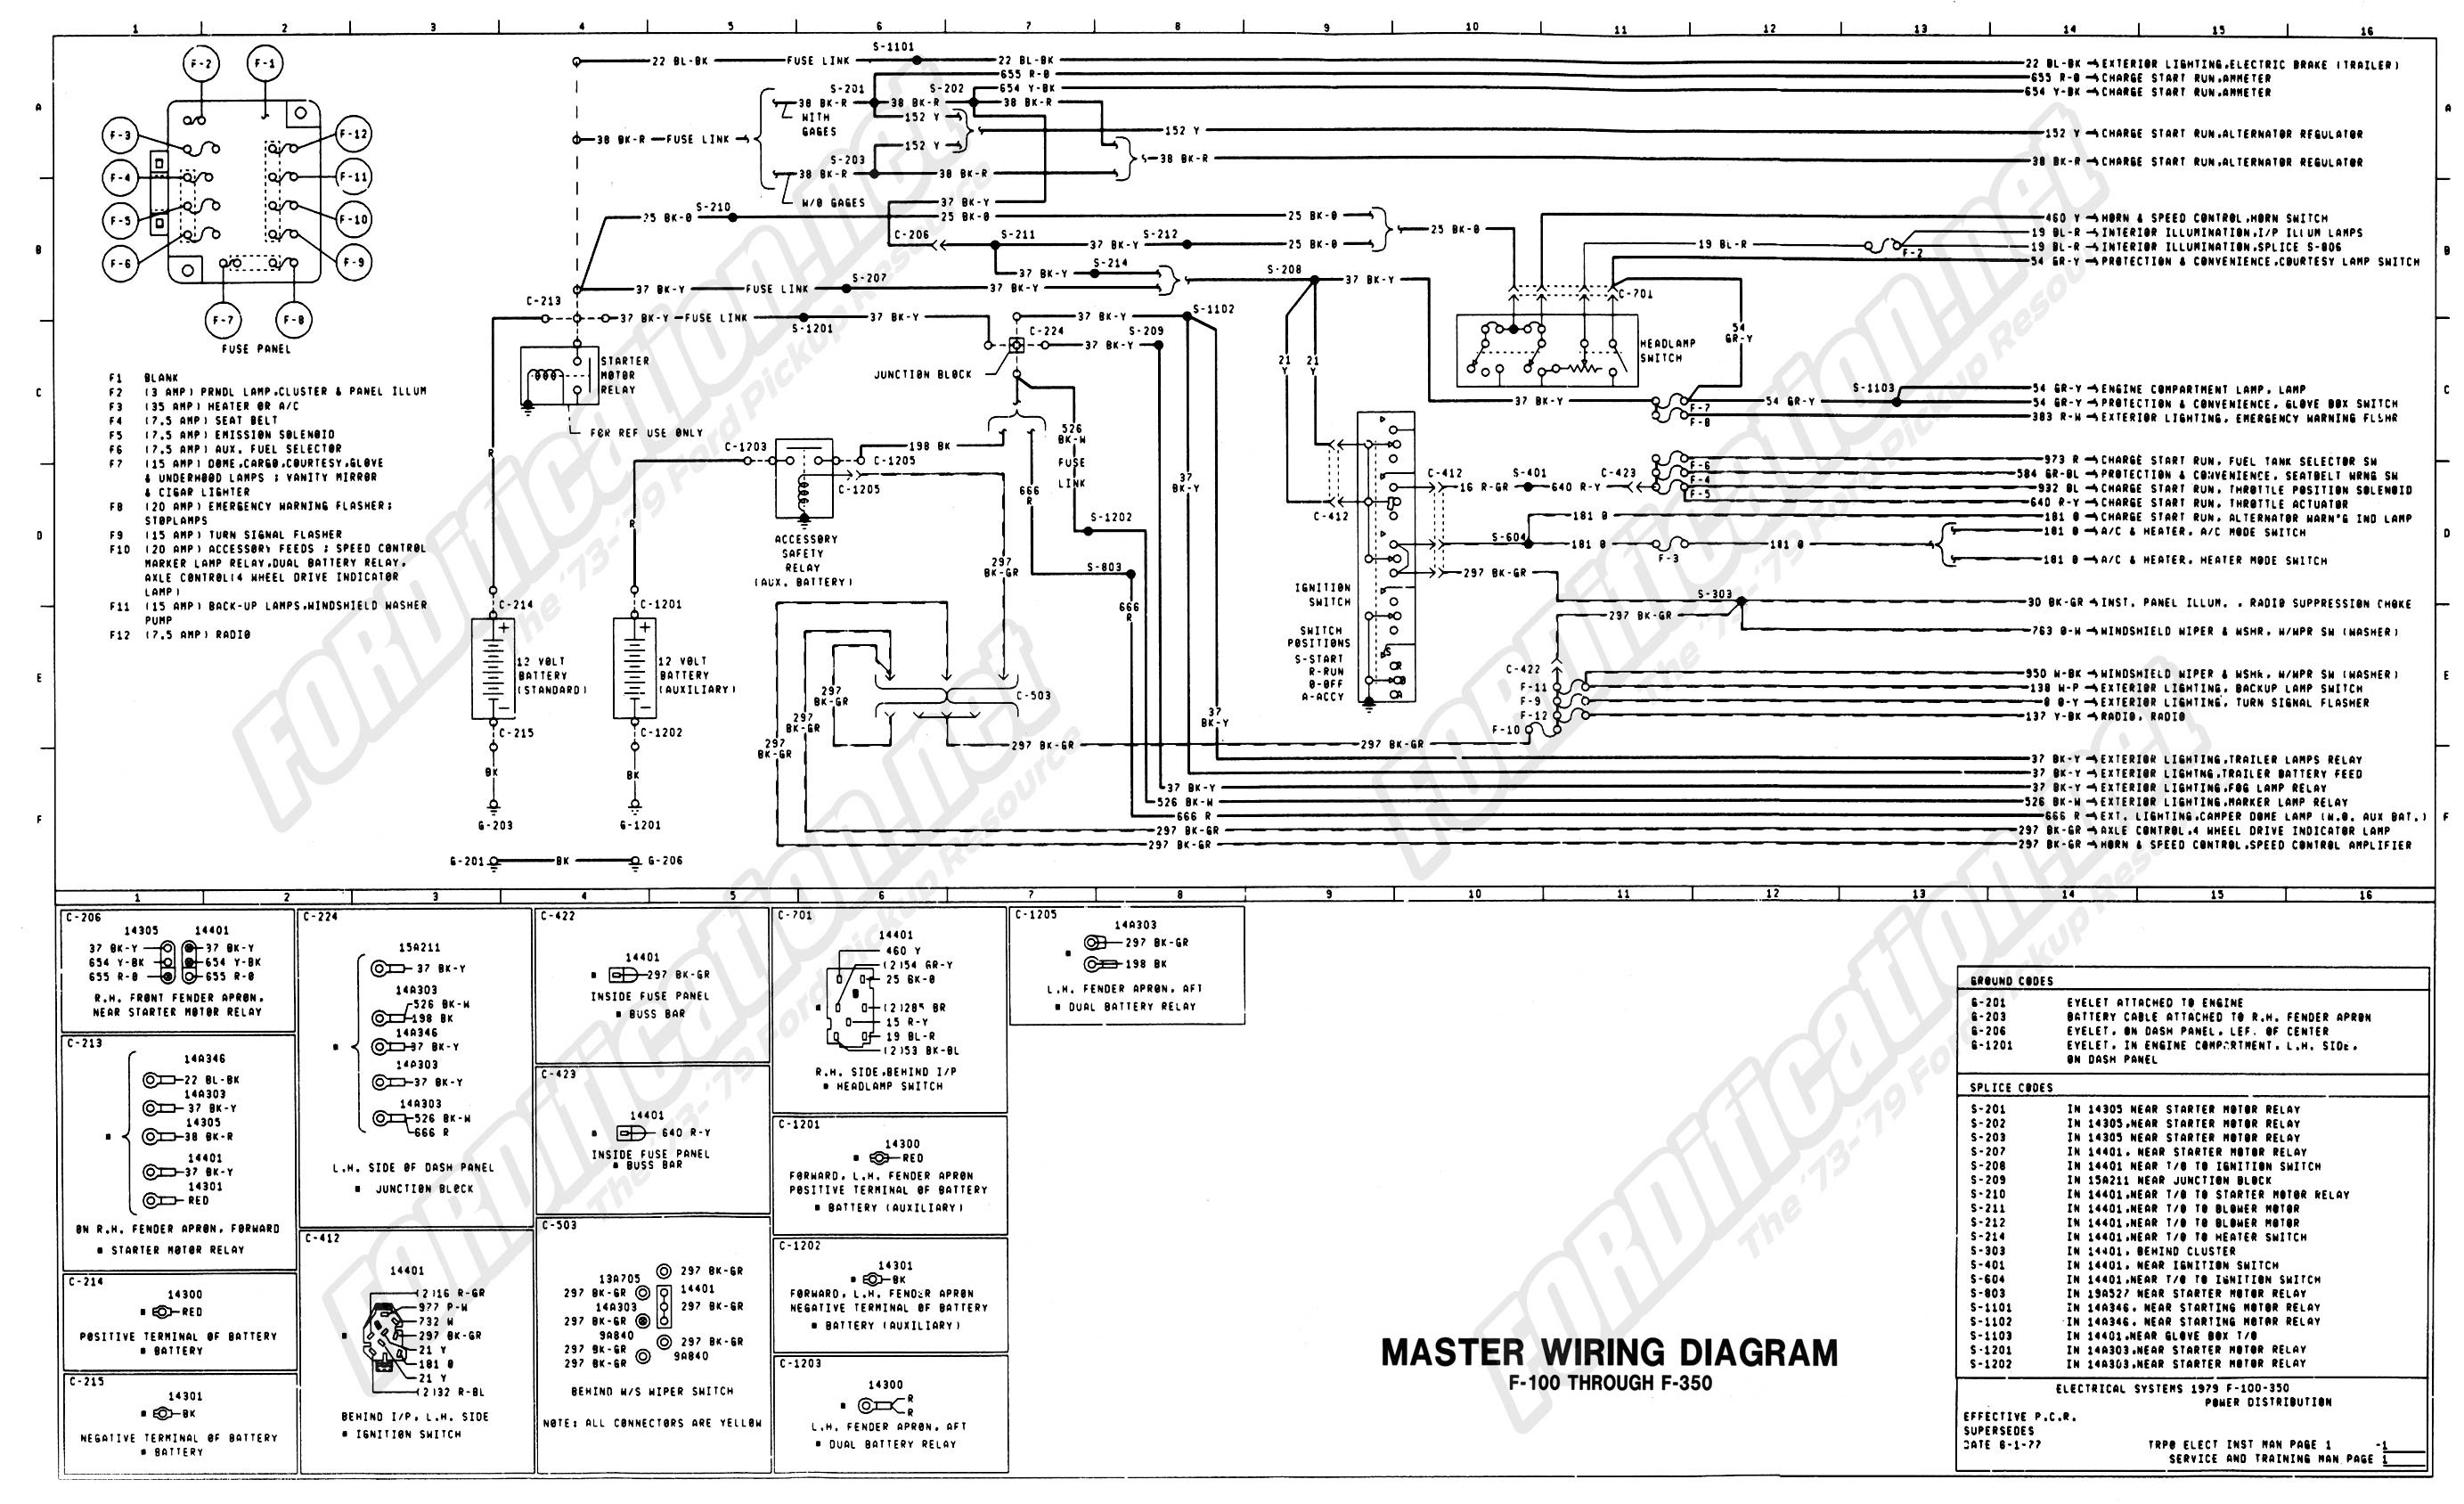 ford ignition wiring diagram beautiful ford truck wiring diagrams 2000 f150 radio wiring diagram ford ignition wiring diagram wiring diagram 1979 ford f150 ignition switch and ford ignition of ford